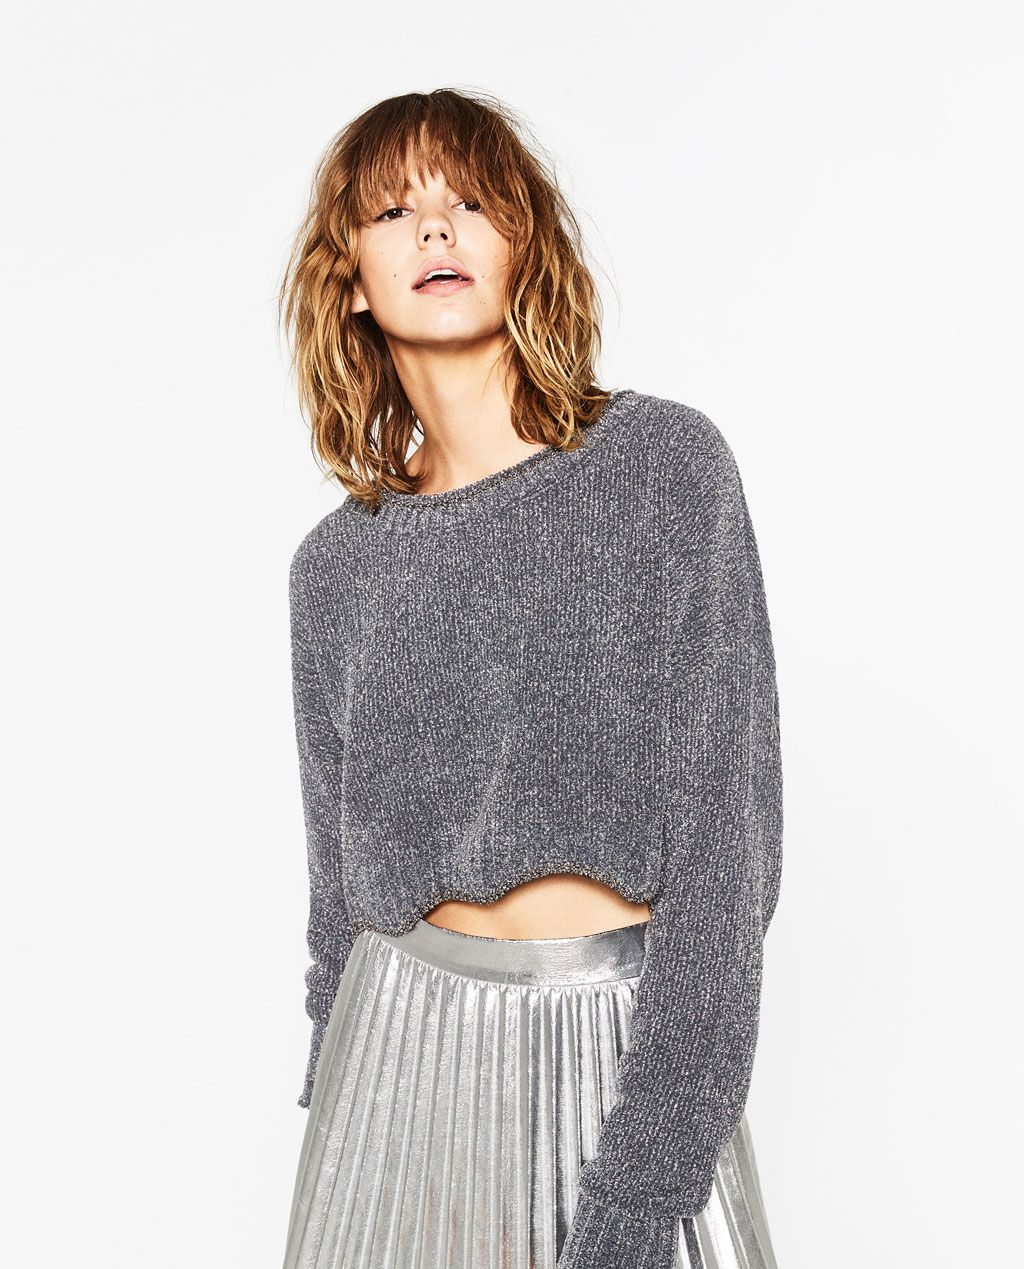 SHINY CROPPED SWEATER NEW IN WOMAN | ZARA United States